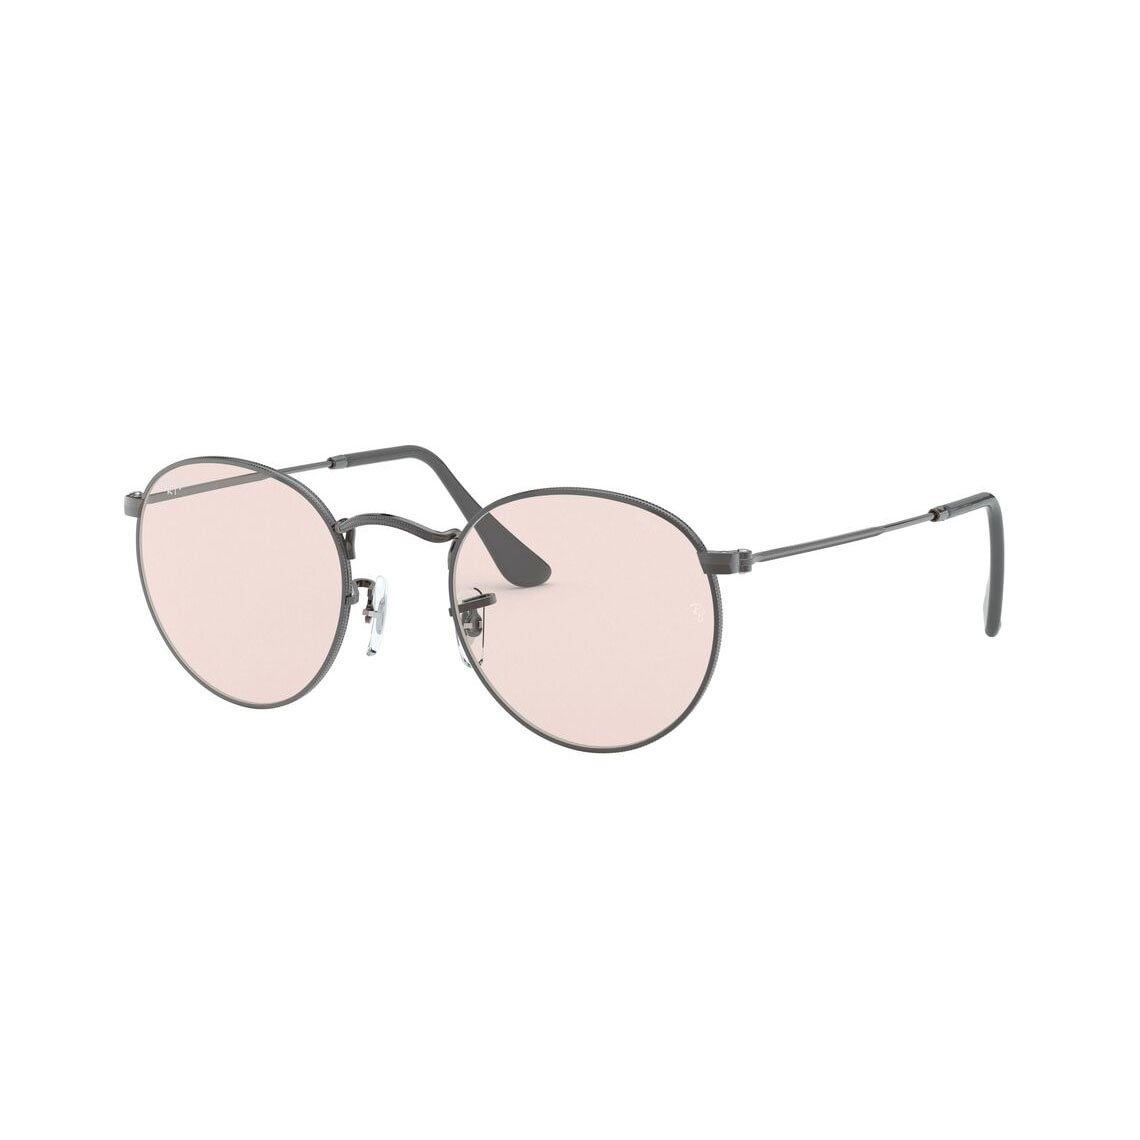 Ray-Ban Round metal RB3447 Solid Evolve 004/T5 5321